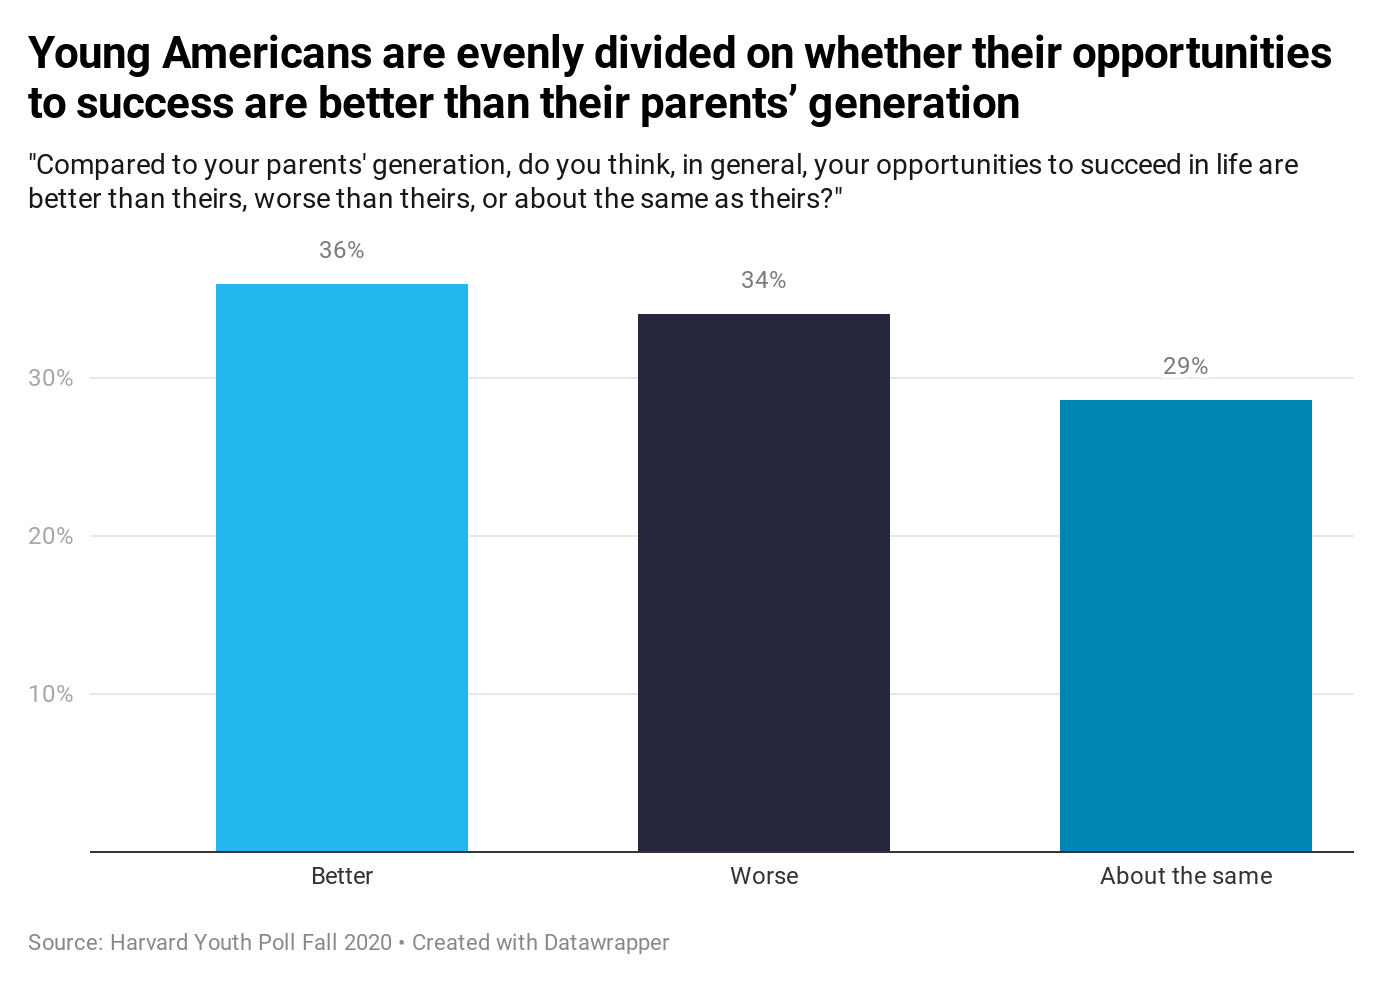 Harvard Youth Poll: Young Americans are evenly divided on whether their opportunities to success are better than their parents' generation